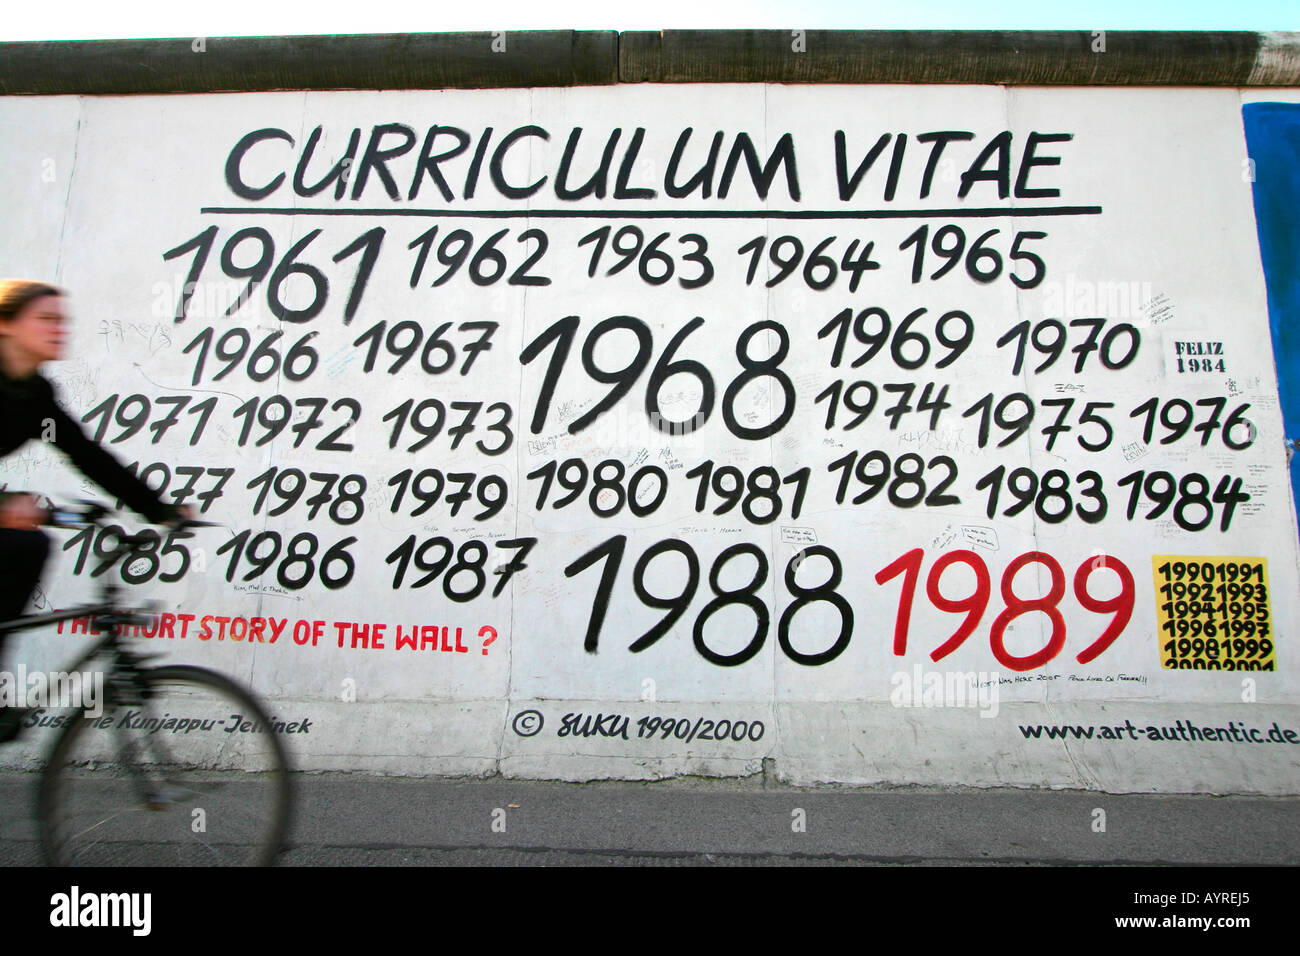 fbb971bc69a9d Curriculum vitae of the Berlin Wall